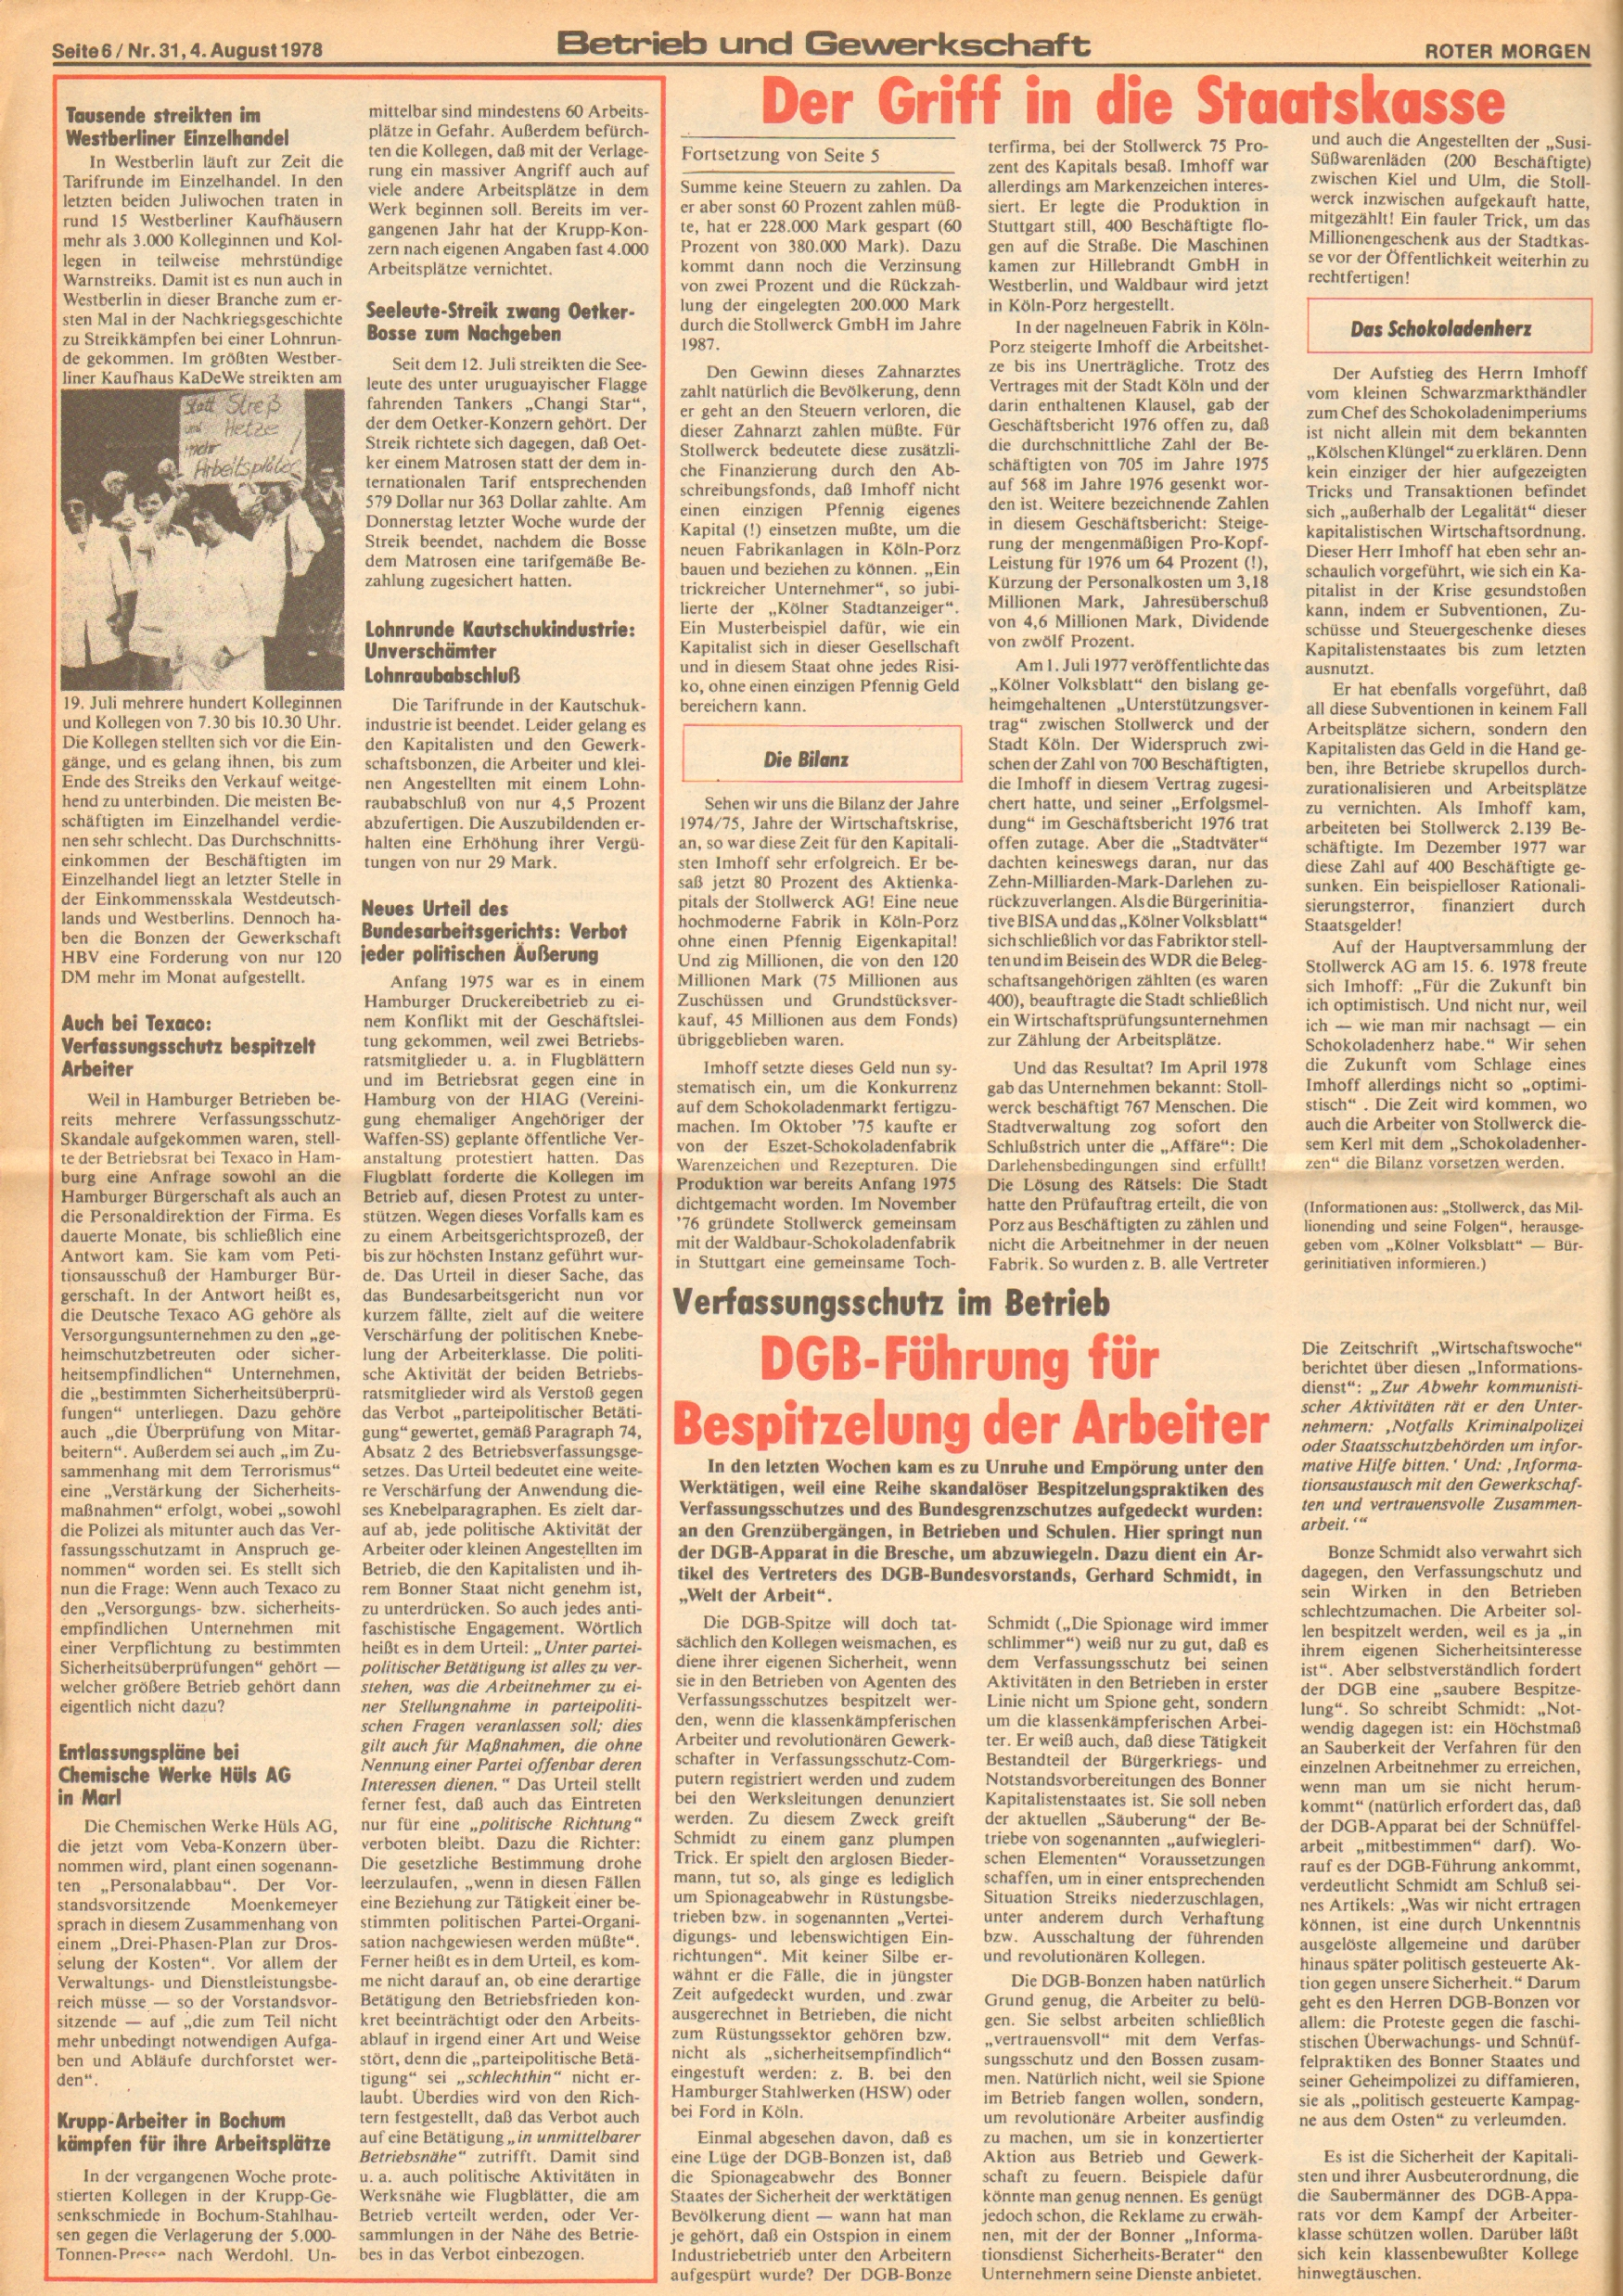 Roter Morgen, 12. Jg., 4. August 1978, Nr. 31, Seite 6